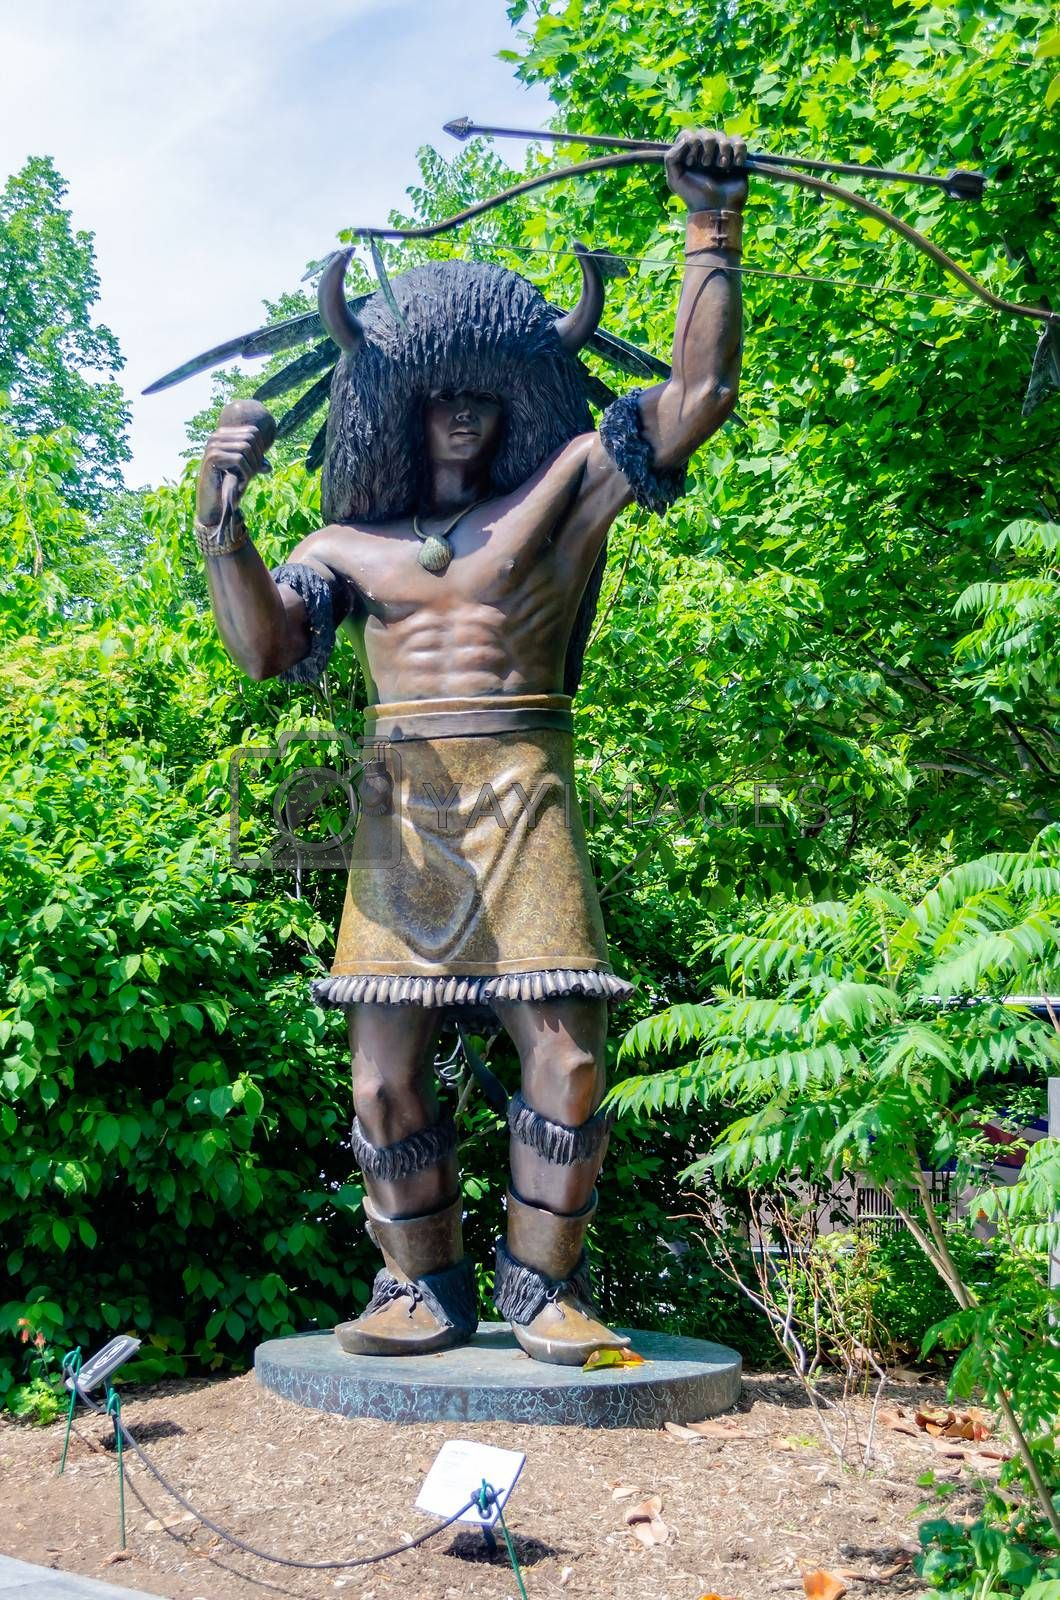 Statue of Native American in Washington DC, National Museum of the American Indian